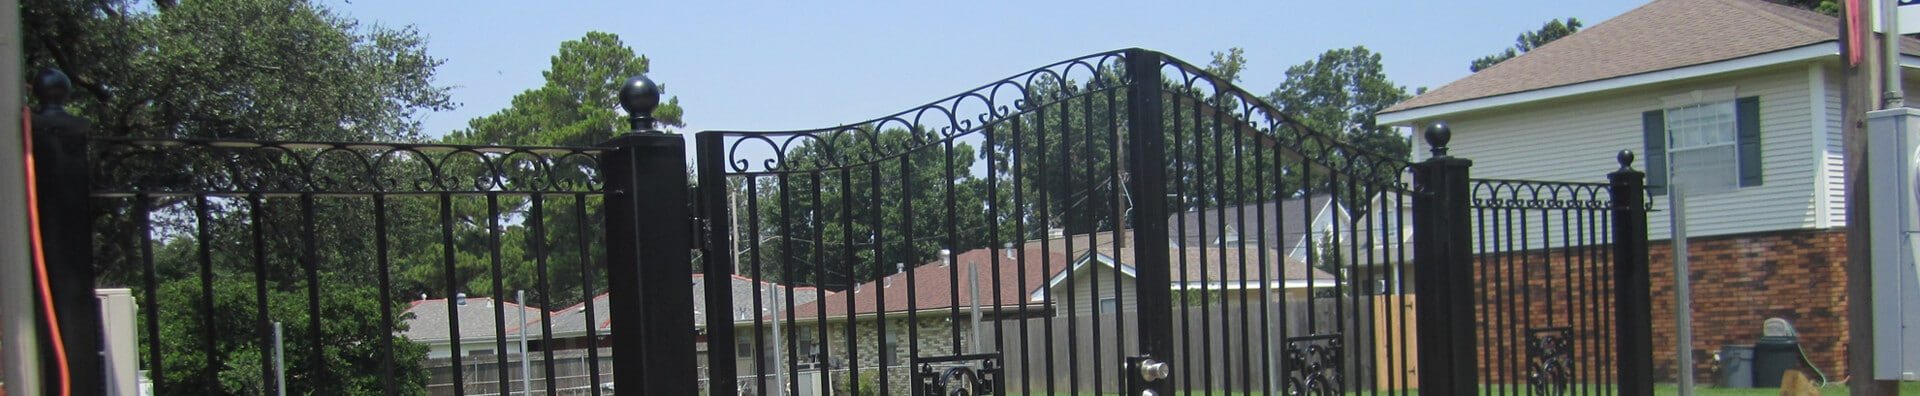 Swing Gate - Crescent Iron Works